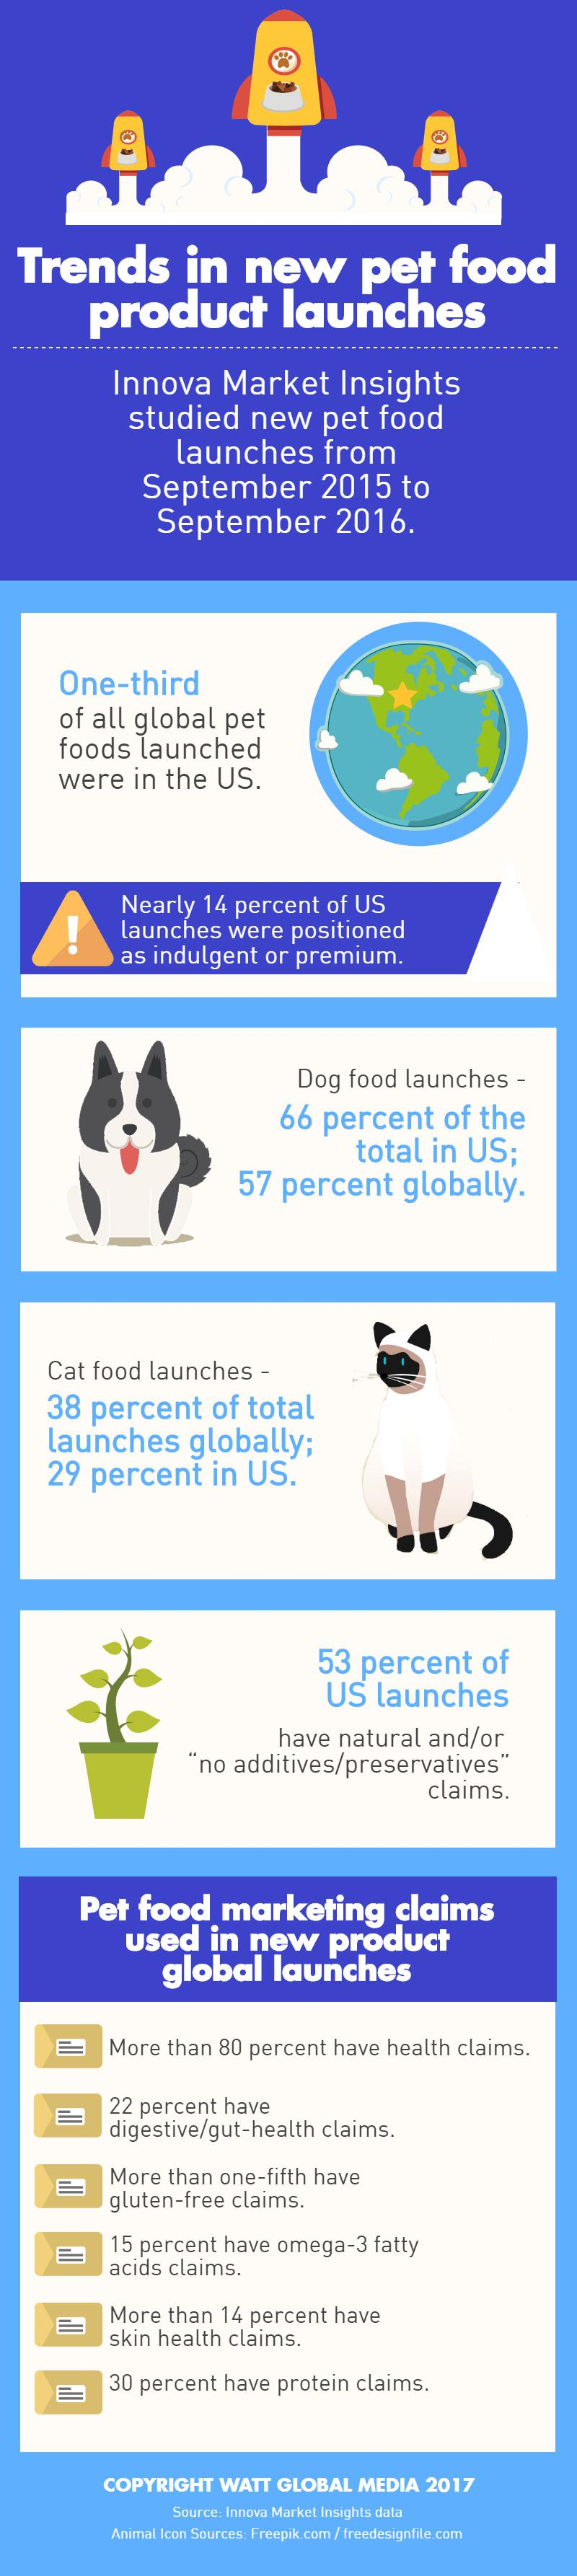 Trends_in_new_pet_food_INFOGRAPHIC_v3